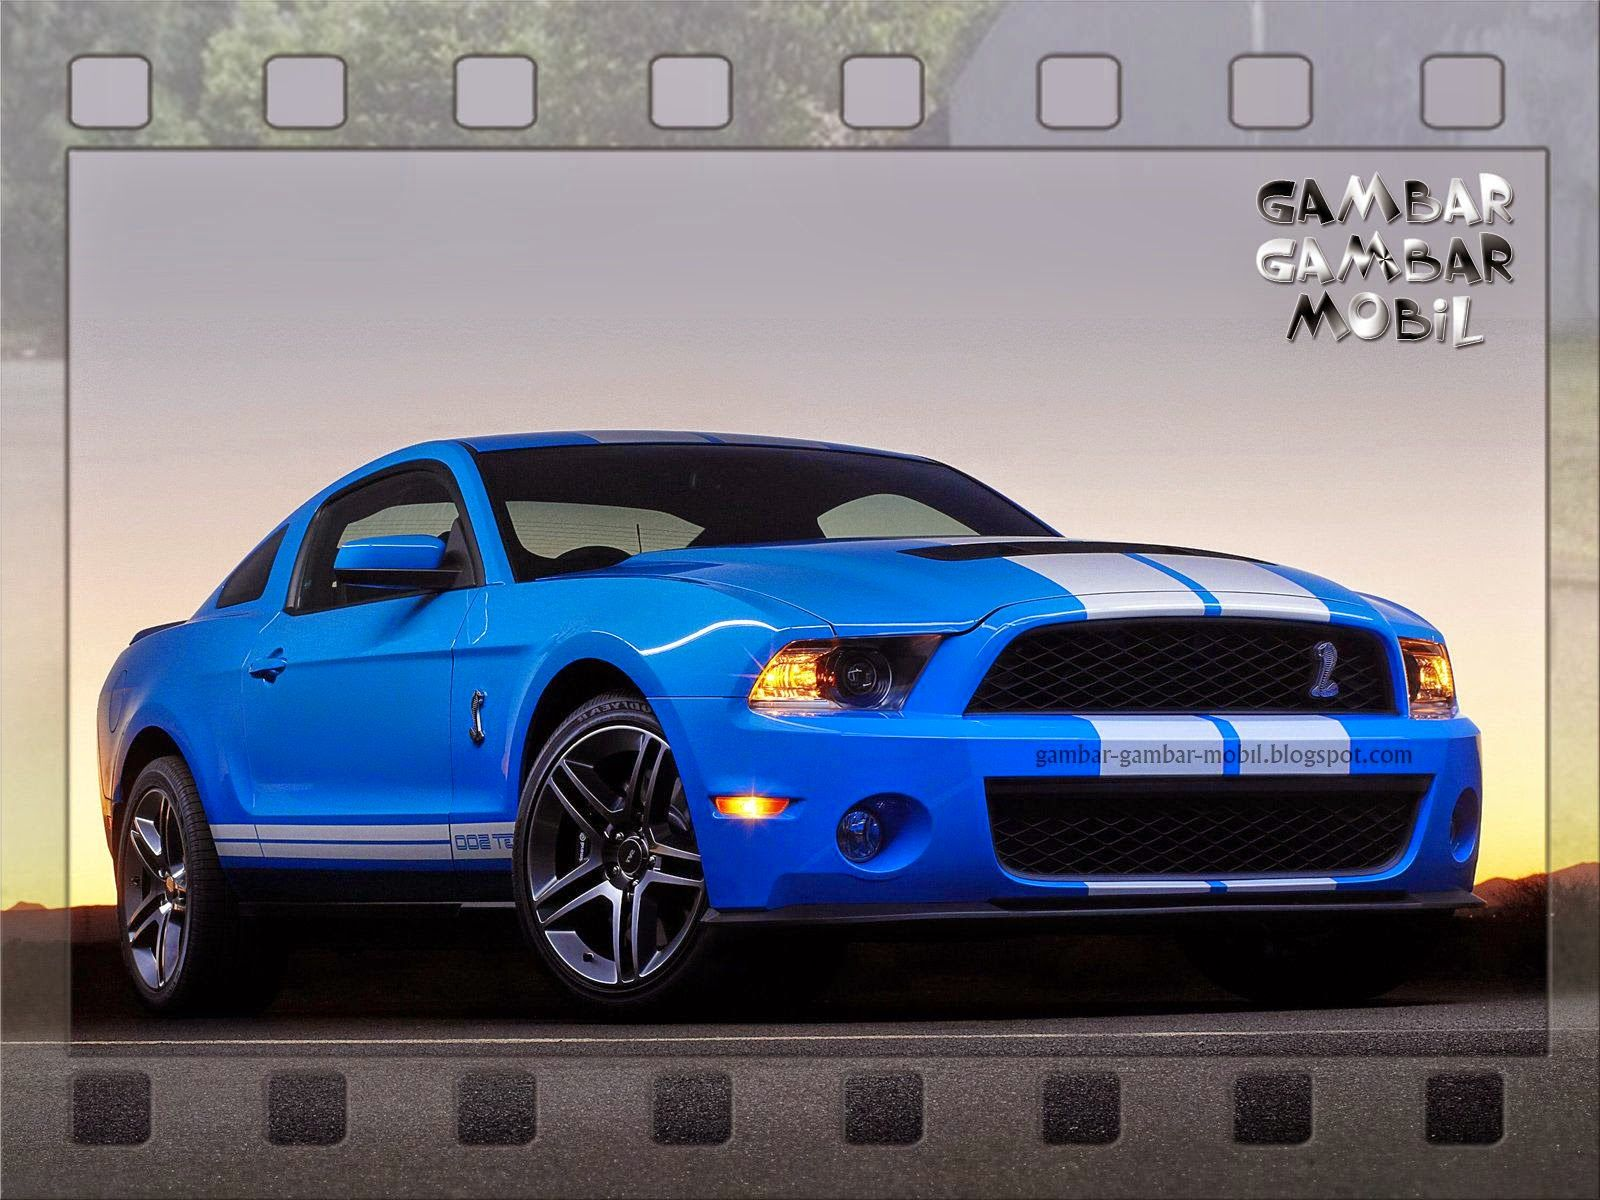 Gambar Mobil Mustang Gambar Gambar Mobil Mobil Mustang Mobil Ford Mustang